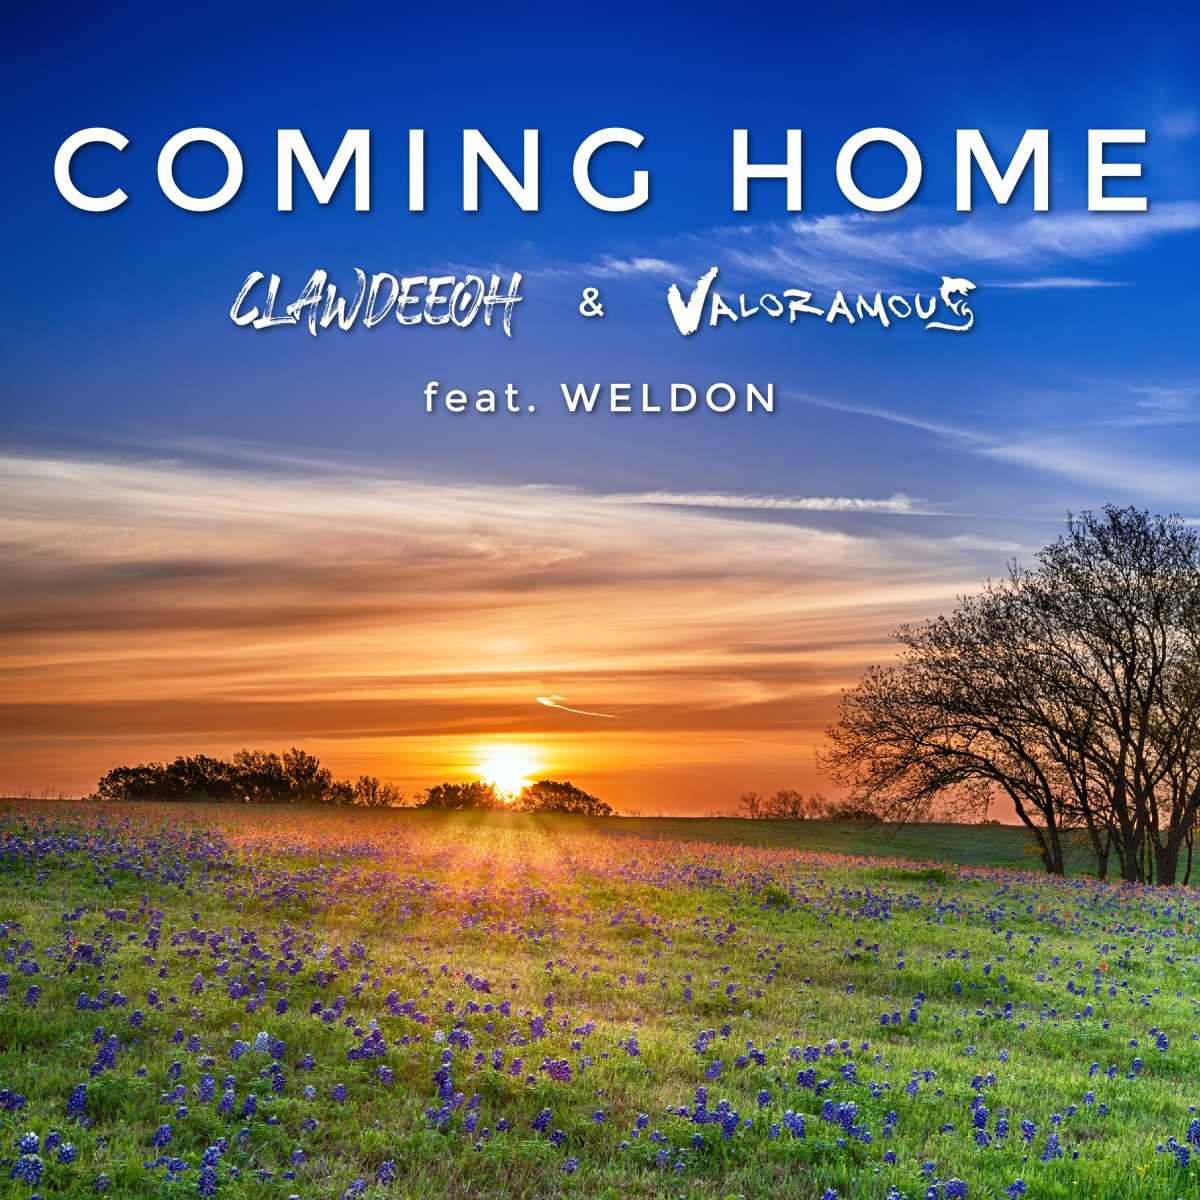 """Artwork for Clawdeeoh and Valoramous' """"Coming Home."""""""